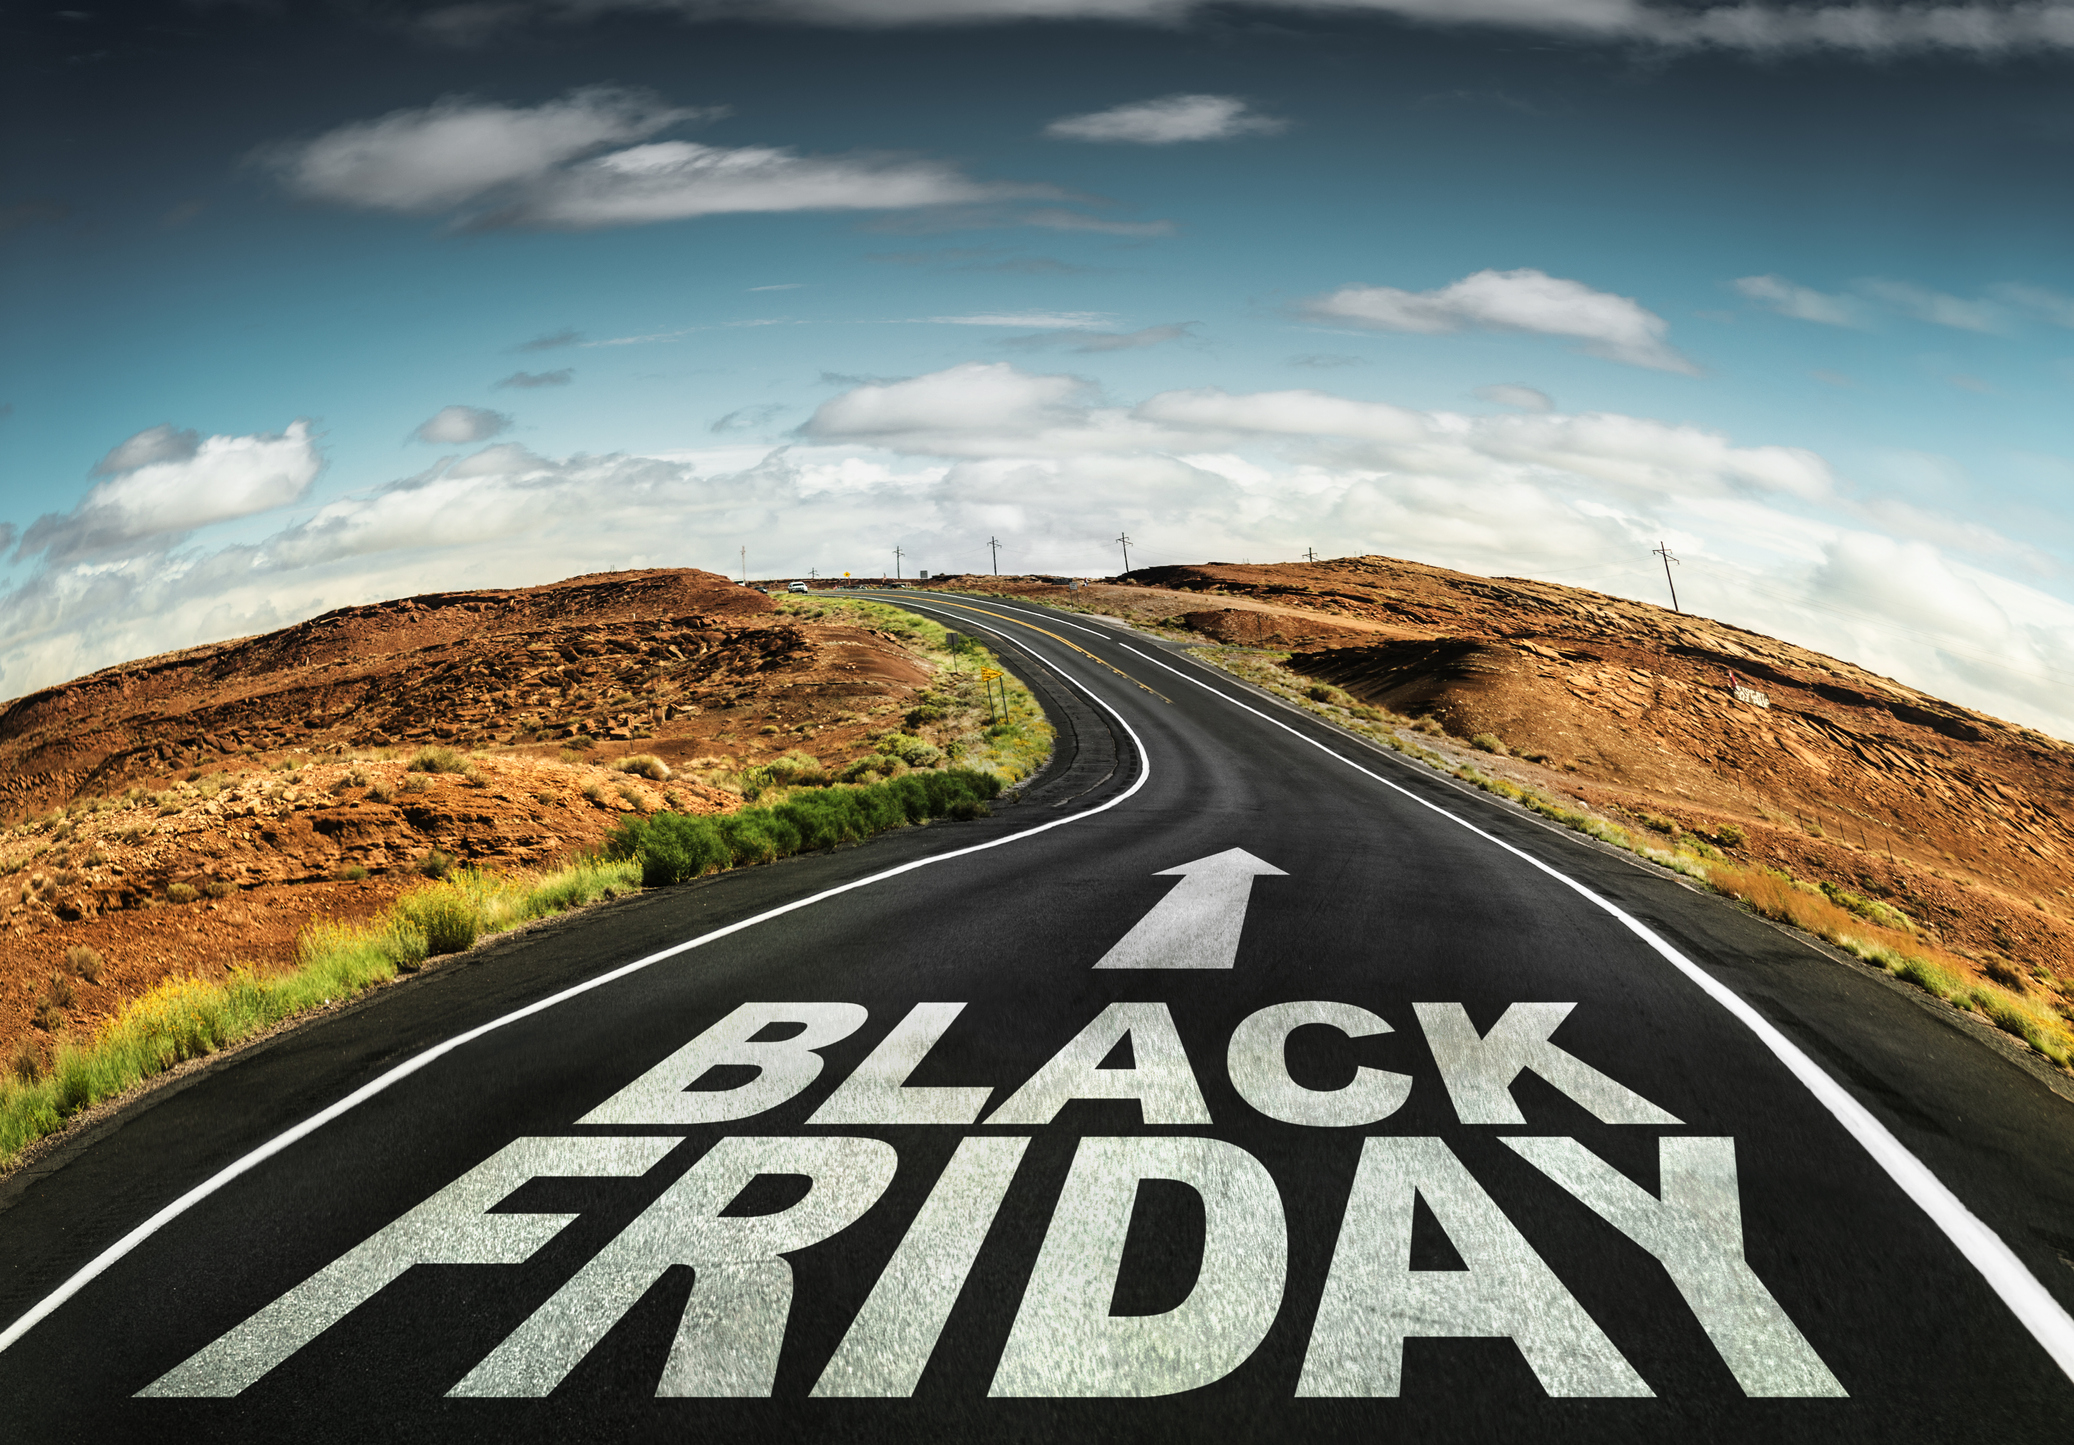 to the black friday